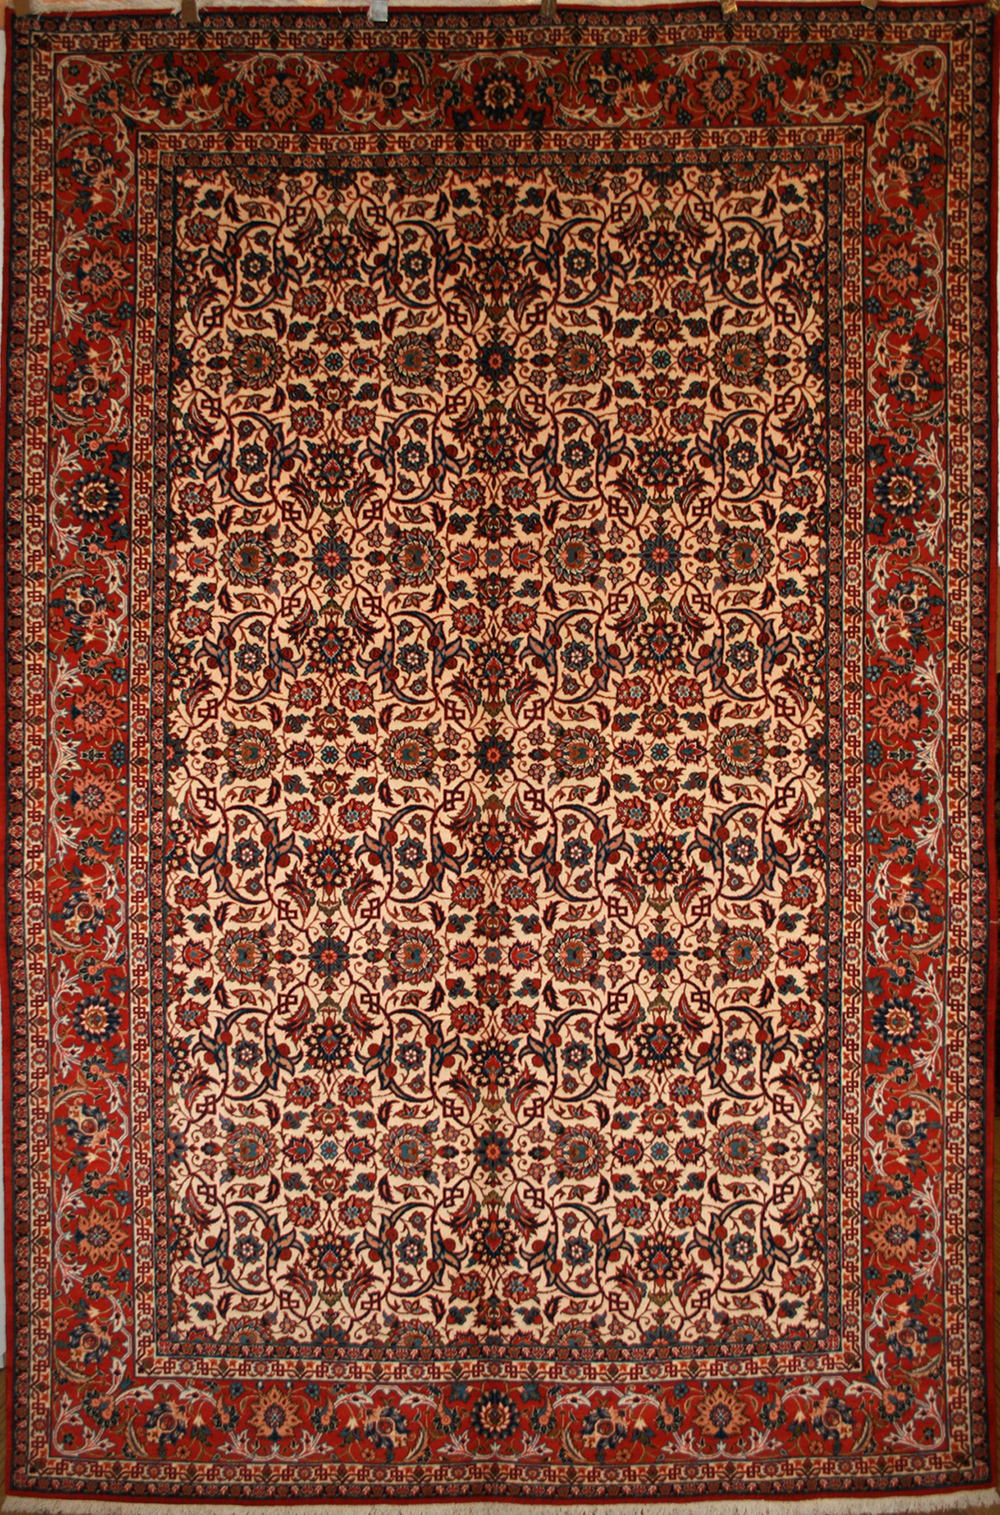 A large Isfahan carpet with all over pattern